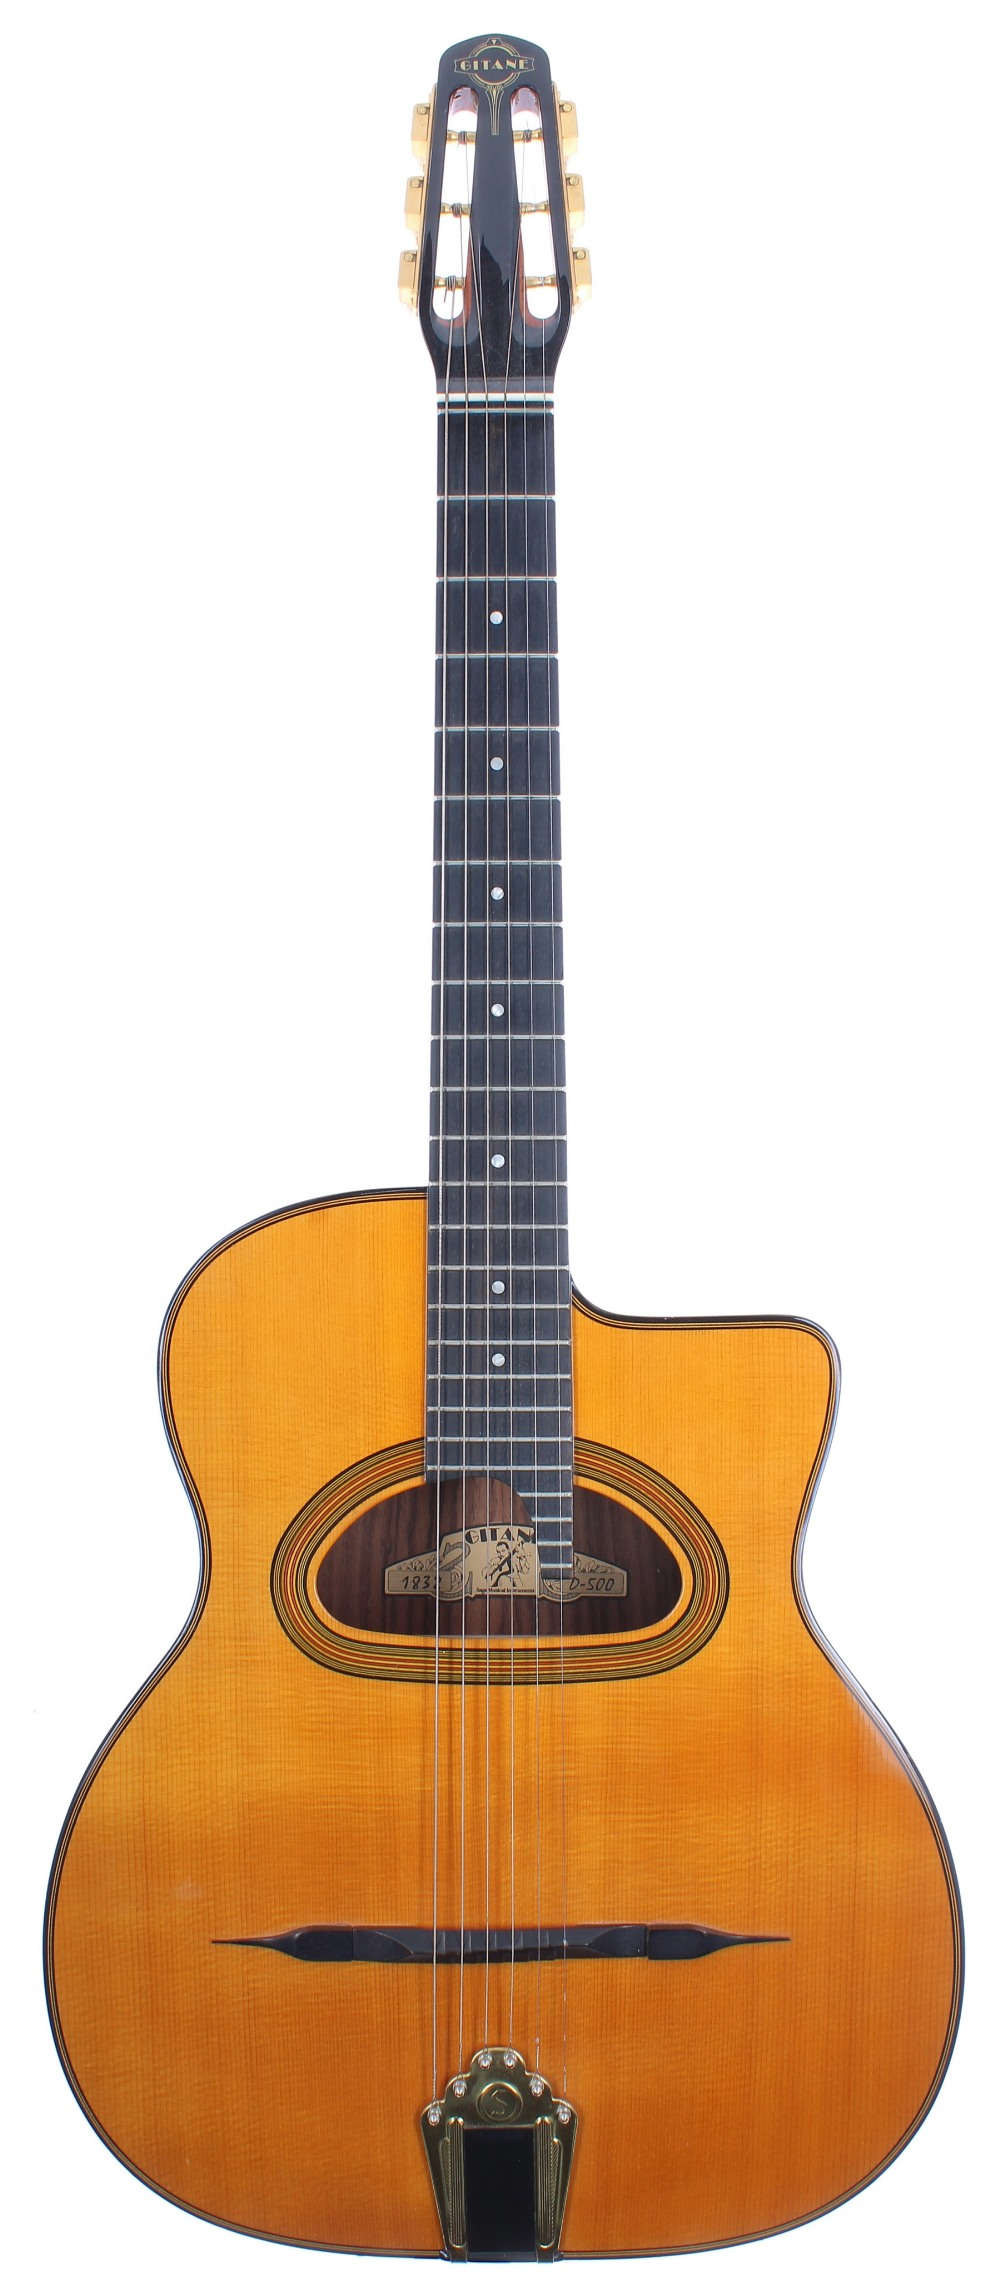 2004 Saga Instruments Gitane D-500 gypsy jazz acoustic guitar; Back and sides: rosewood; Top: